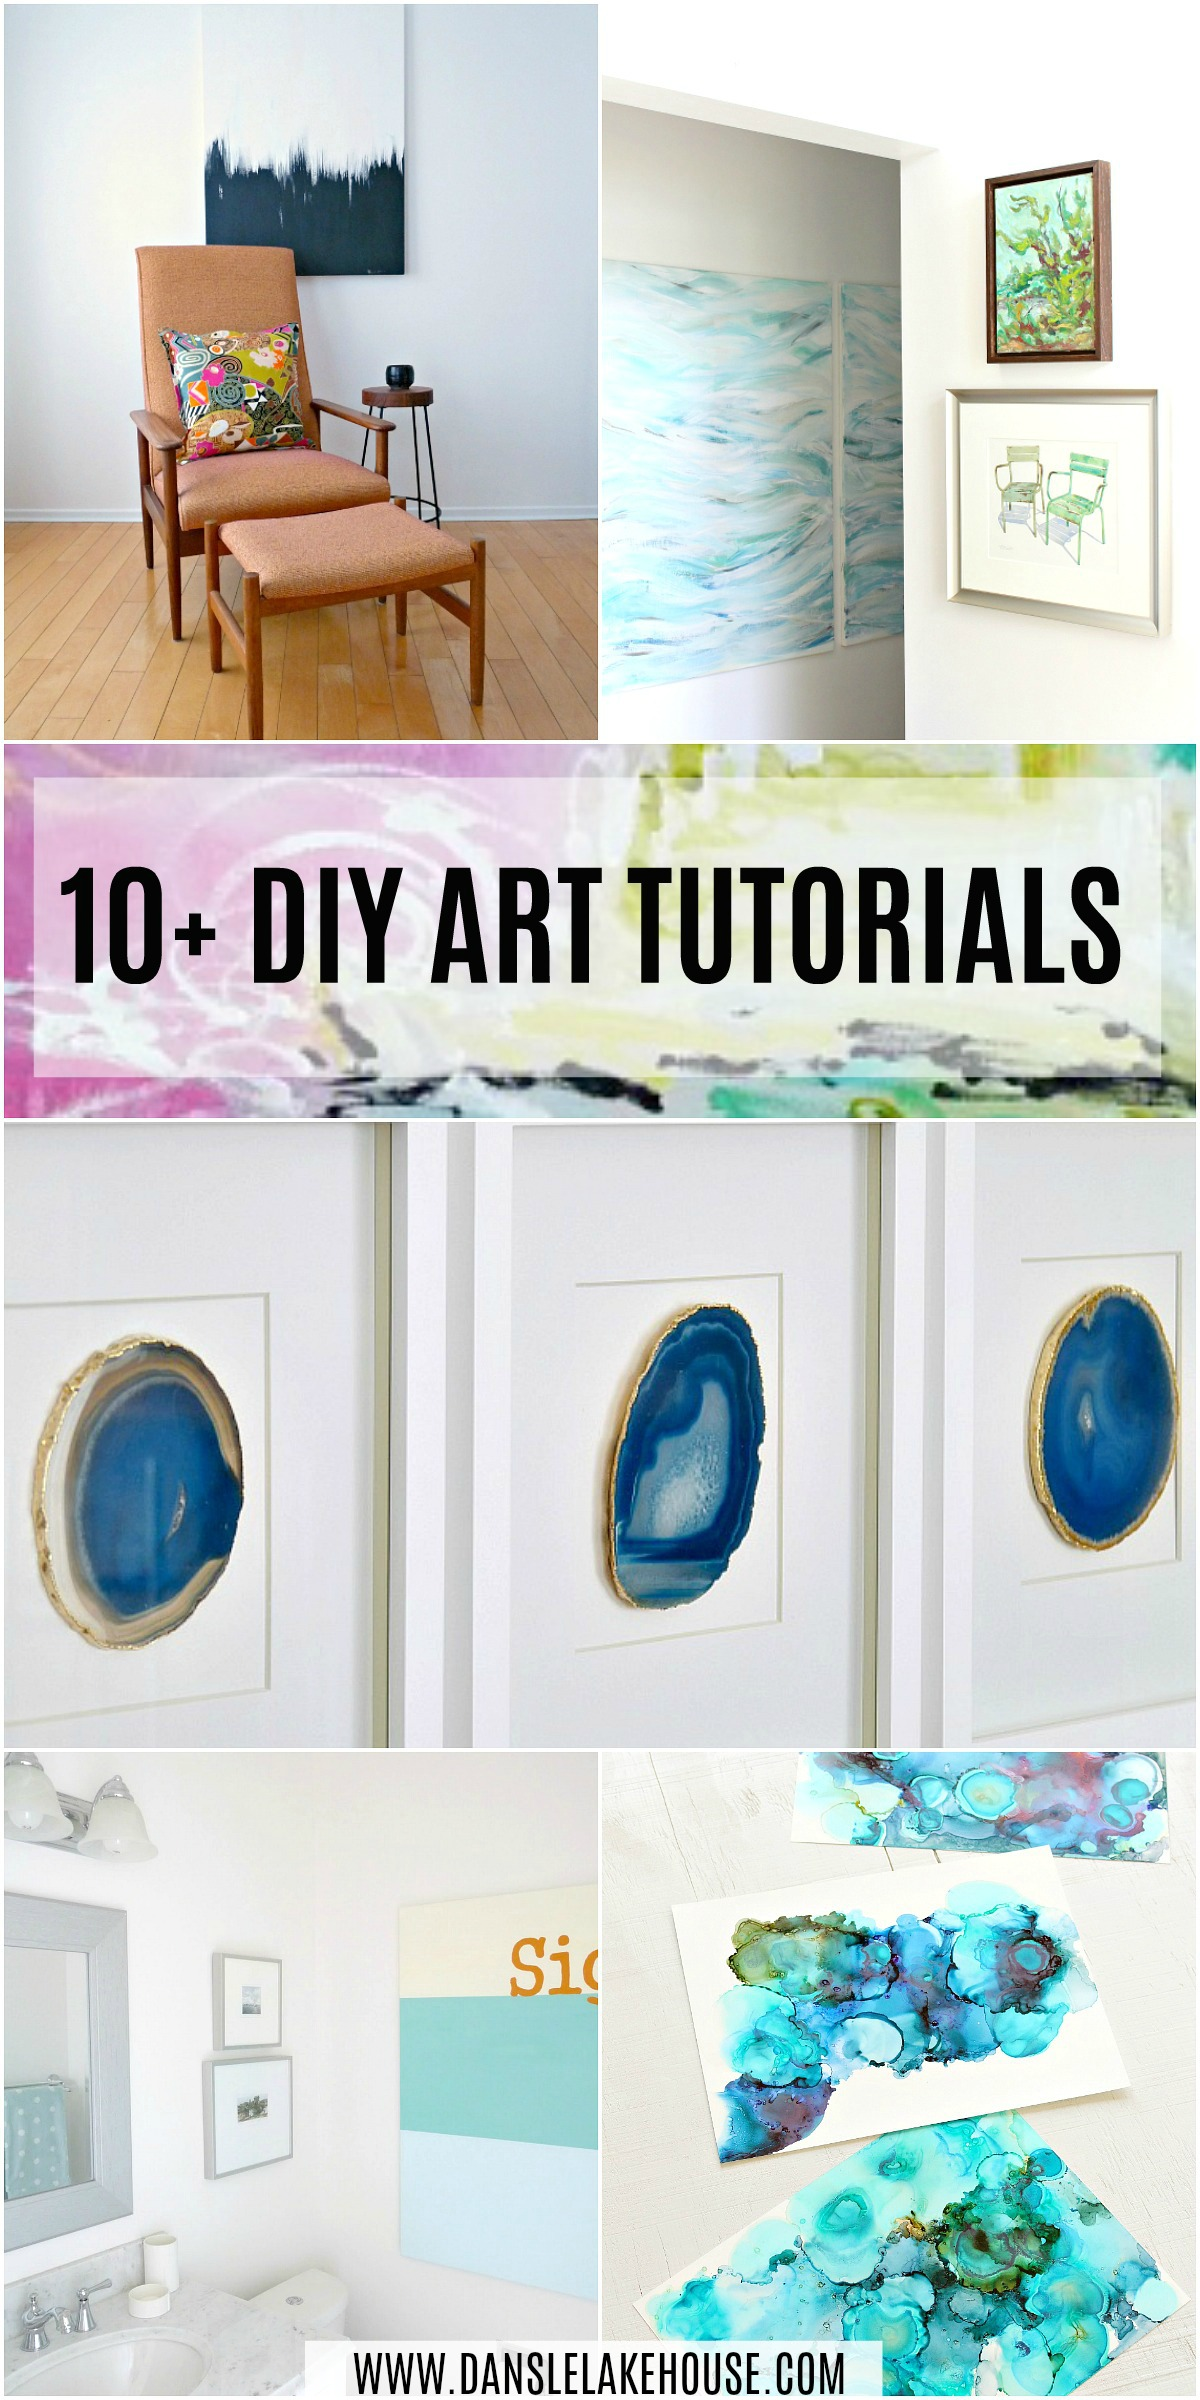 10+ DIY Art Project Tutorials Plus Learn How to Frame Canvas Art